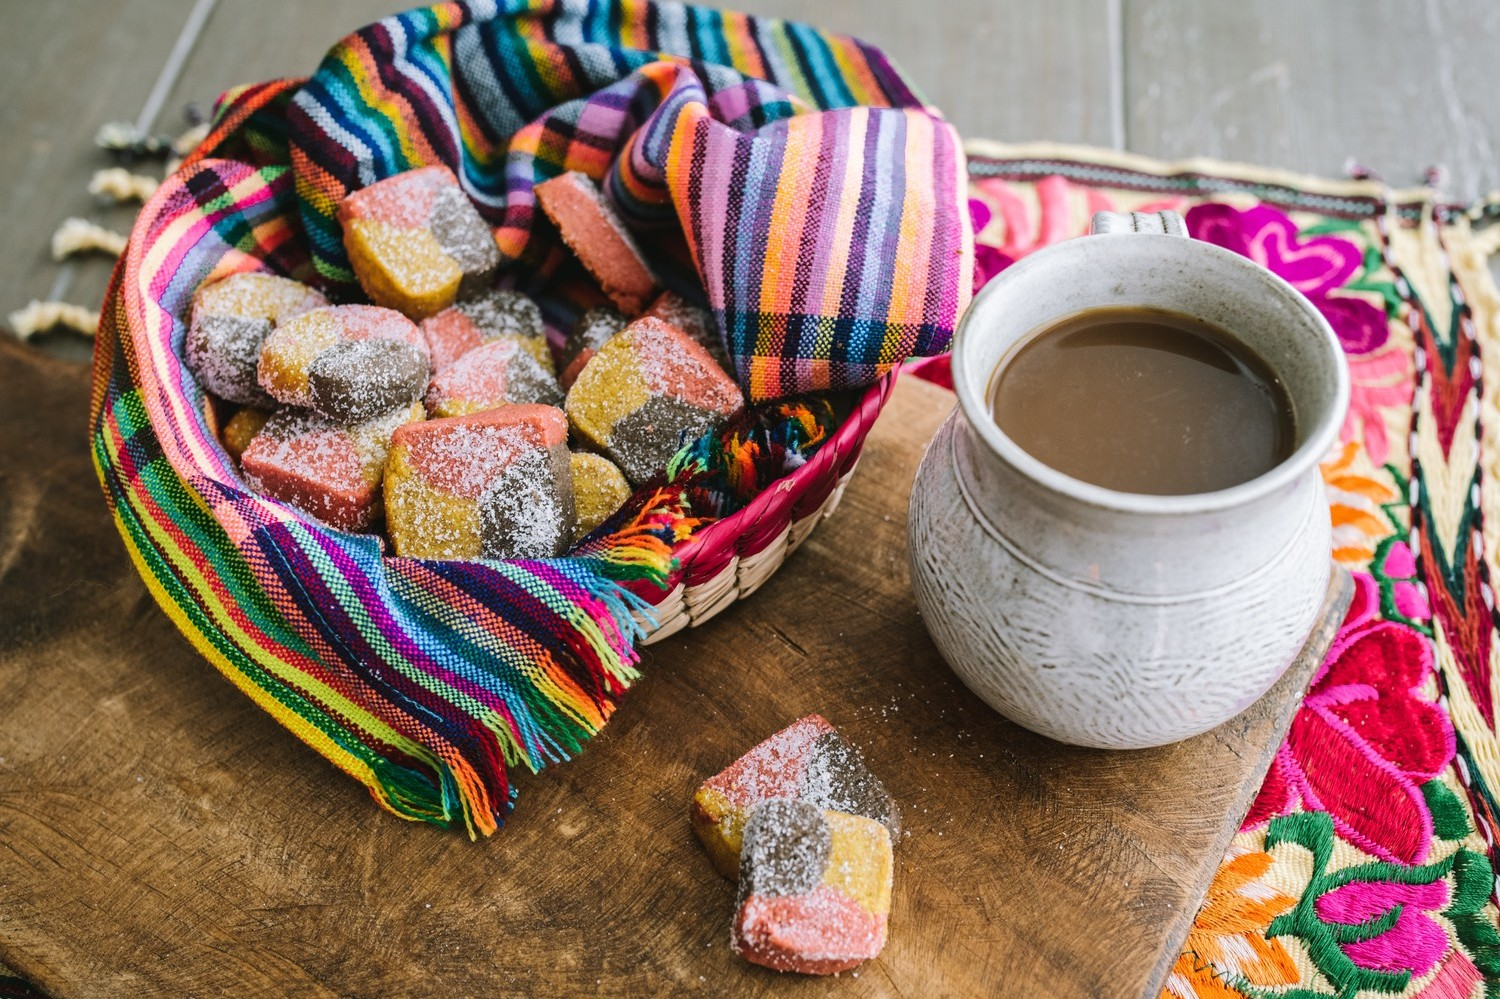 Mexican tri-color polvorones recipe for nutty, hearty, whole wheat shortbread cookies dusted with sugar. | nelliesfreerange.com